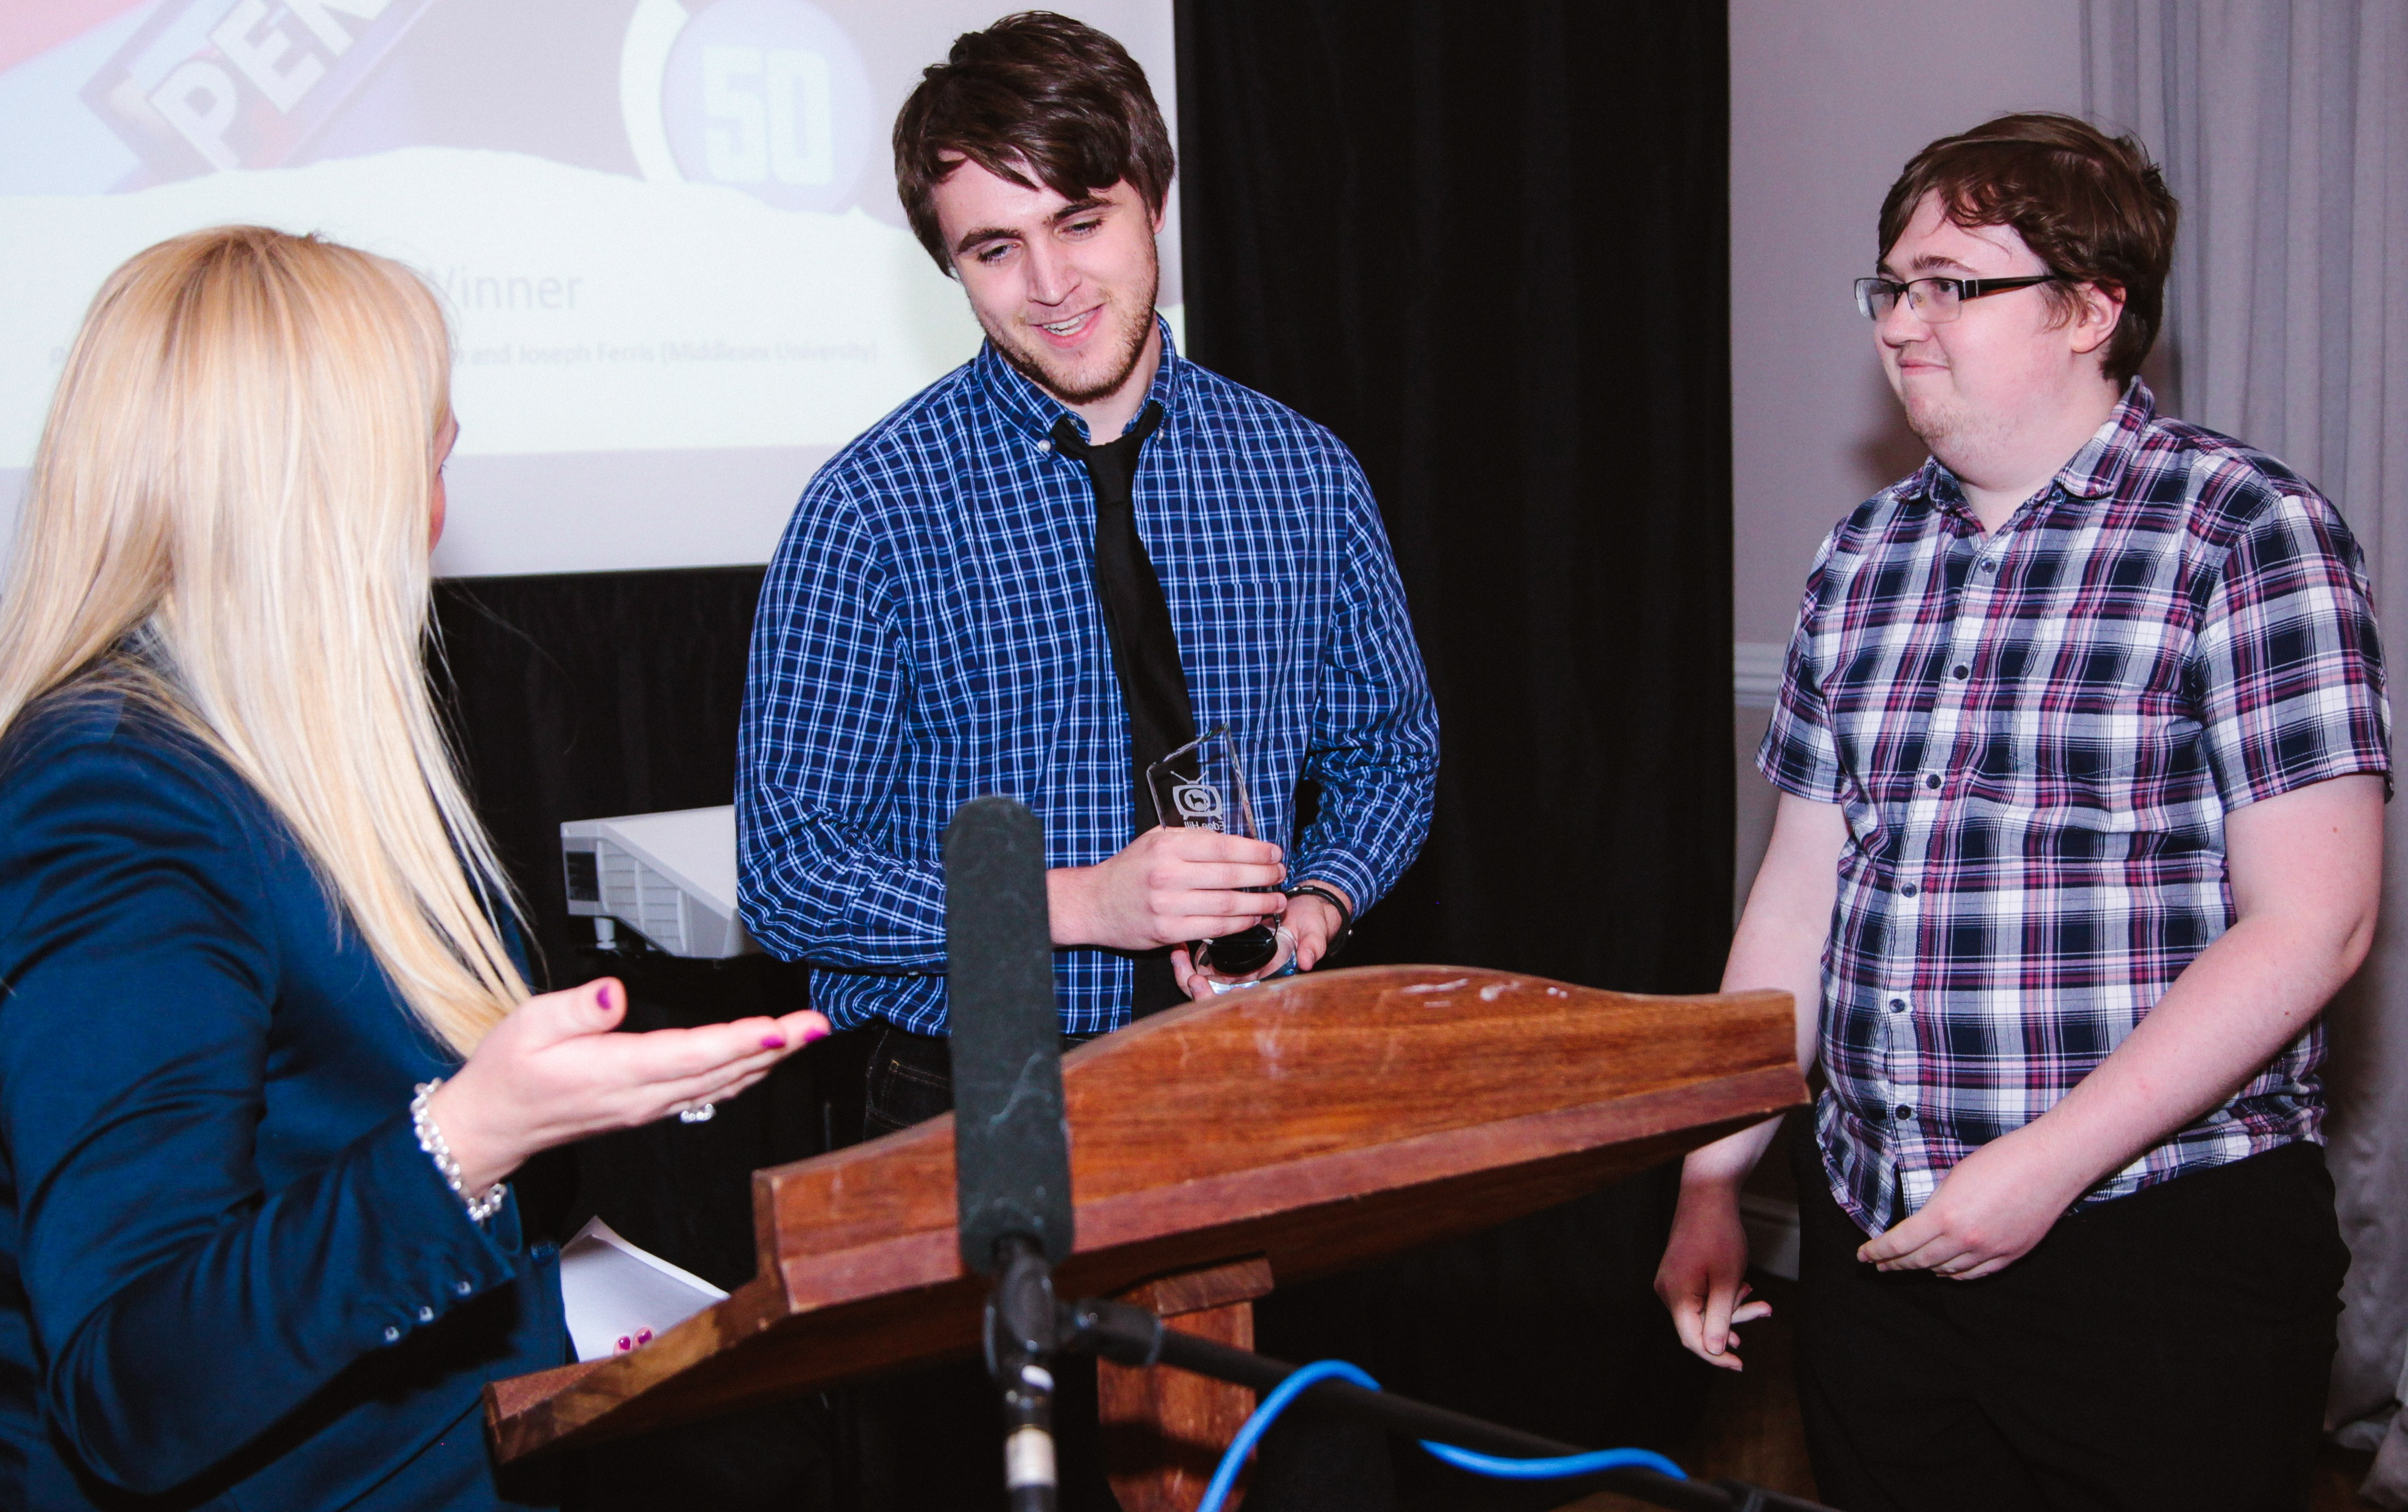 Isaac Pimm and Joseph Ferris receiving prize at Critical Awards in TV